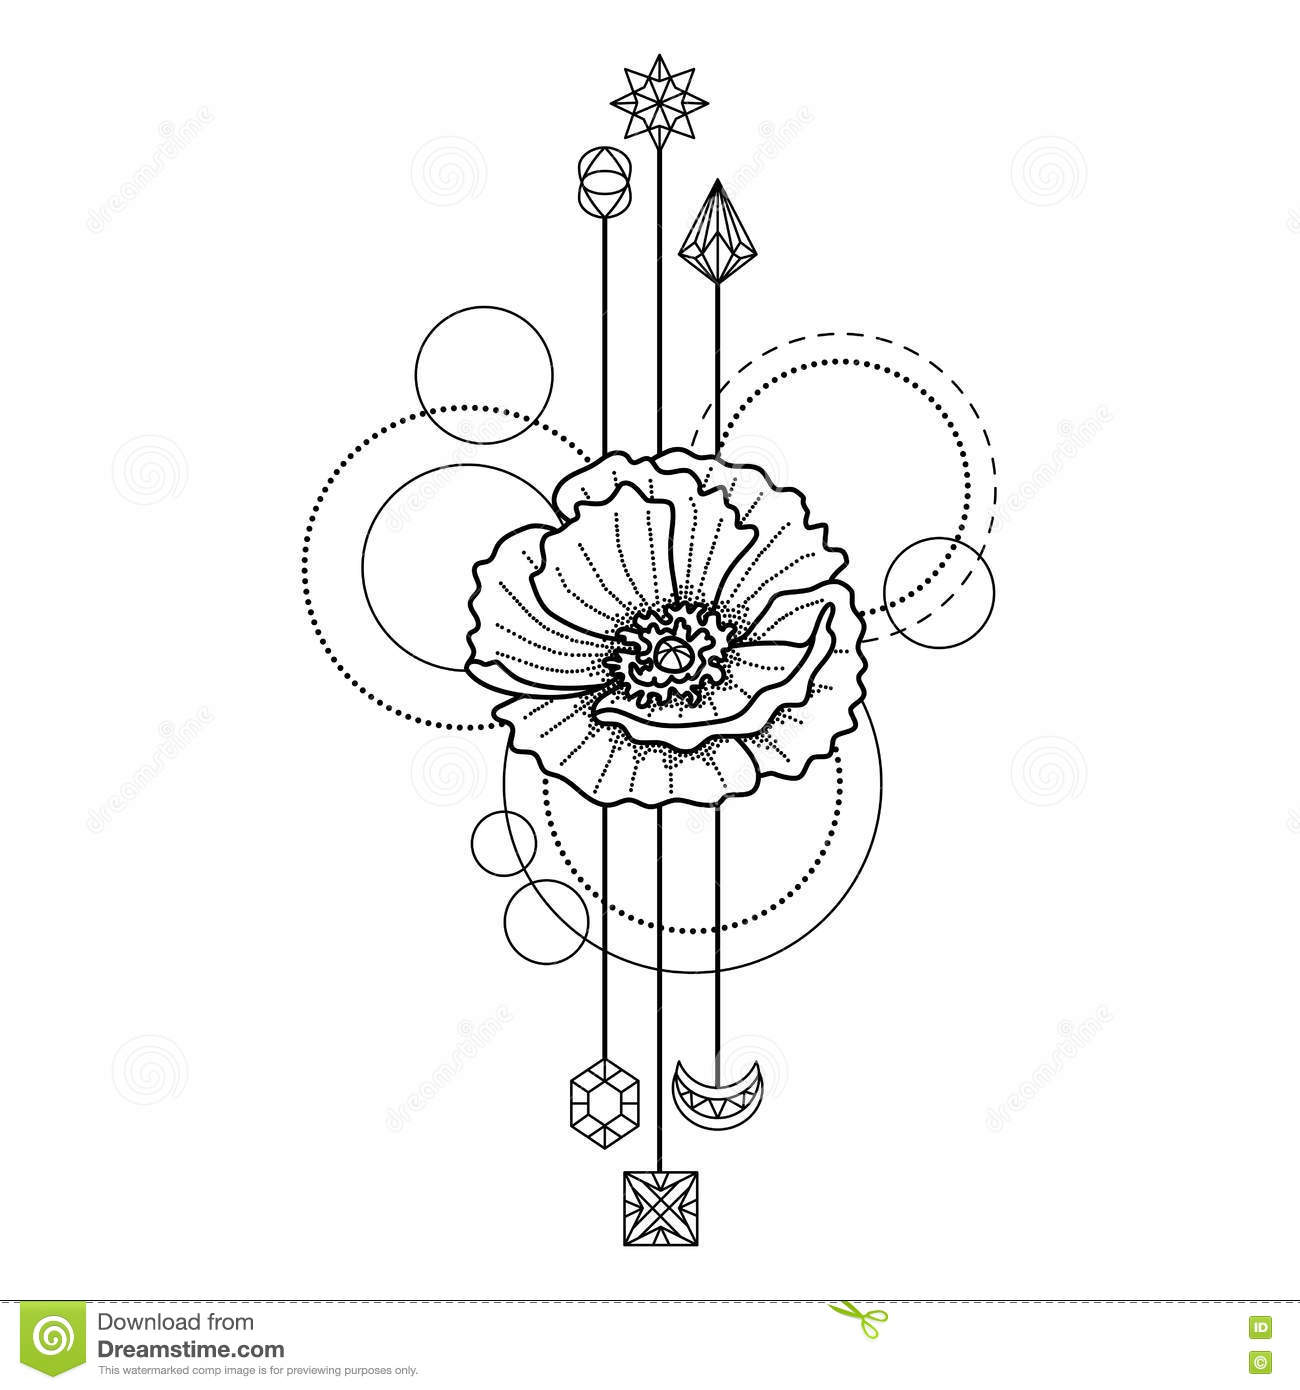 Tatouage Geometrique Floral Illustration De Vecteur Illustration